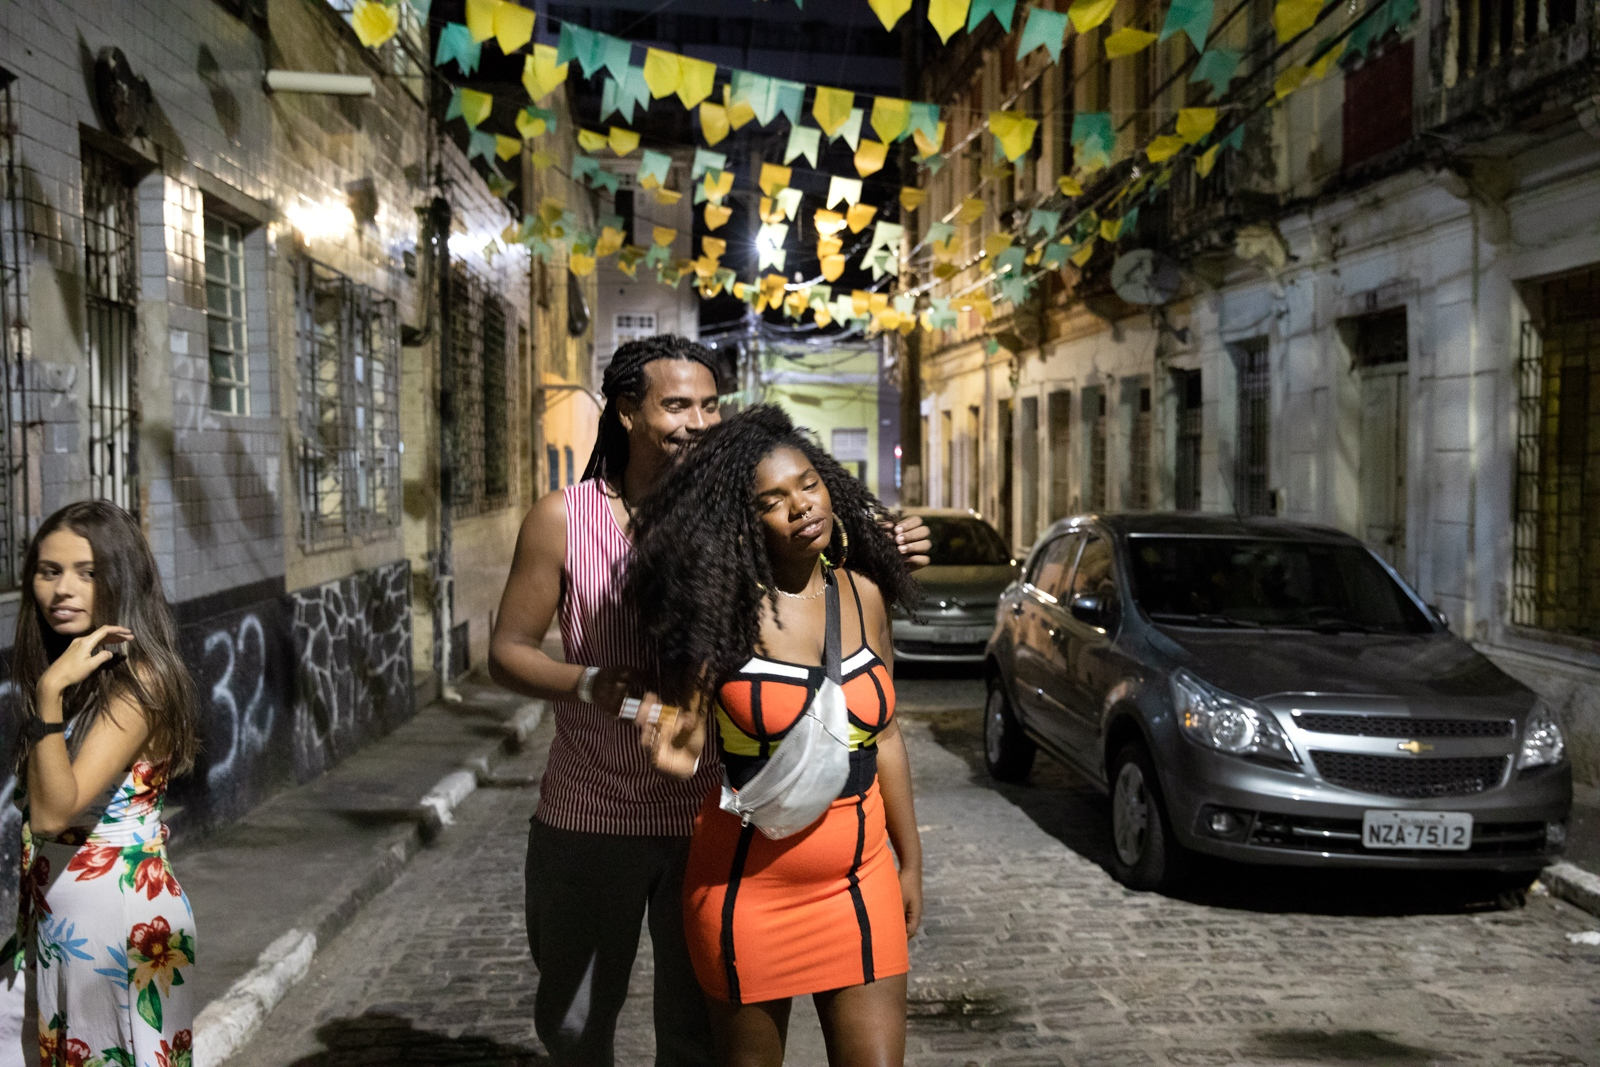 Friends in the streets in front of a Batekoo party in Salvador. The Afro-Brazilian women are becoming very aware of their nature and origins. Many discussions about how letting the natural Afro beauty and hair are also part of a political manifestation for democracy and inclusion. Intersectional mouvements are happening between feminism and LGBTQI+ social requests in the country.